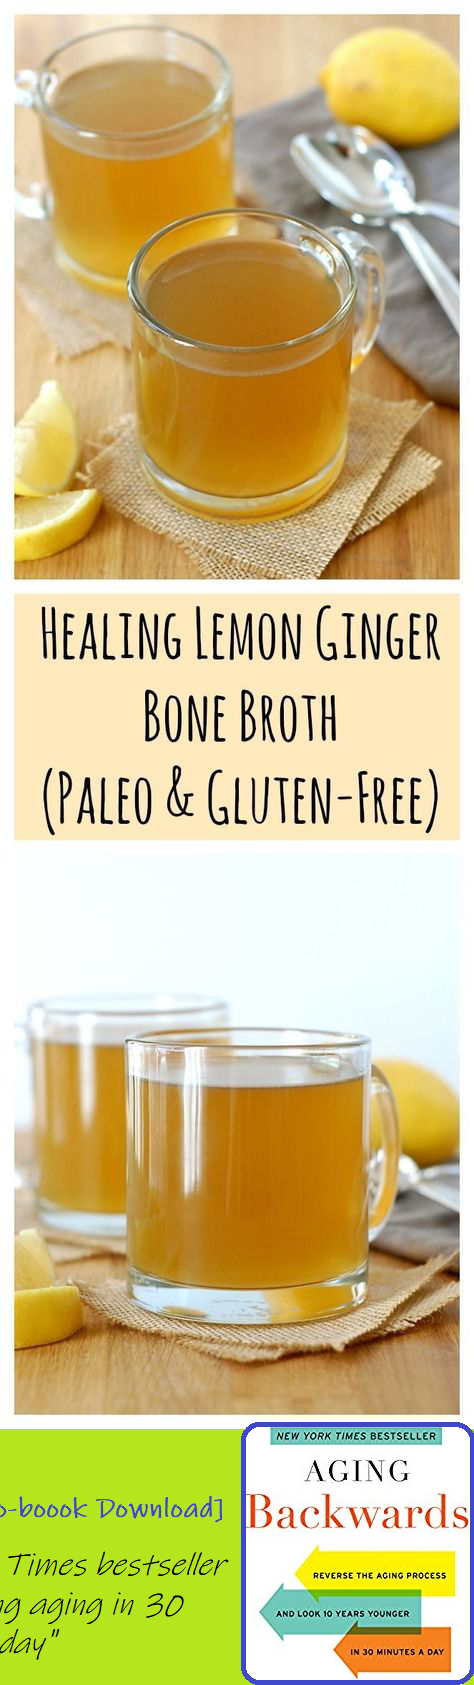 Healing Lemon Ginger Bone Broth (Paleo & Gluten-Free). No matter what ails you, this is the cure! Bone Broth Paleo, Chicken Bone Broth Recipe, Bone Broth Nutrition, Paleo Soup, Best Bone Broth Recipe, Bone Broth Detox, Drinking Bone Broth, Homemade Bone Broth, Soup Broth #bonebrothrecipe Healing Lemon Ginger Bone Broth (Paleo & Gluten-Free). No matter what ails you, this is the cure! Bone Broth Paleo, Chicken Bone Broth Recipe, Bone Broth Nutrition, Paleo Soup, Best Bone Broth Recipe, Bone Broth #bonebrothrecipe